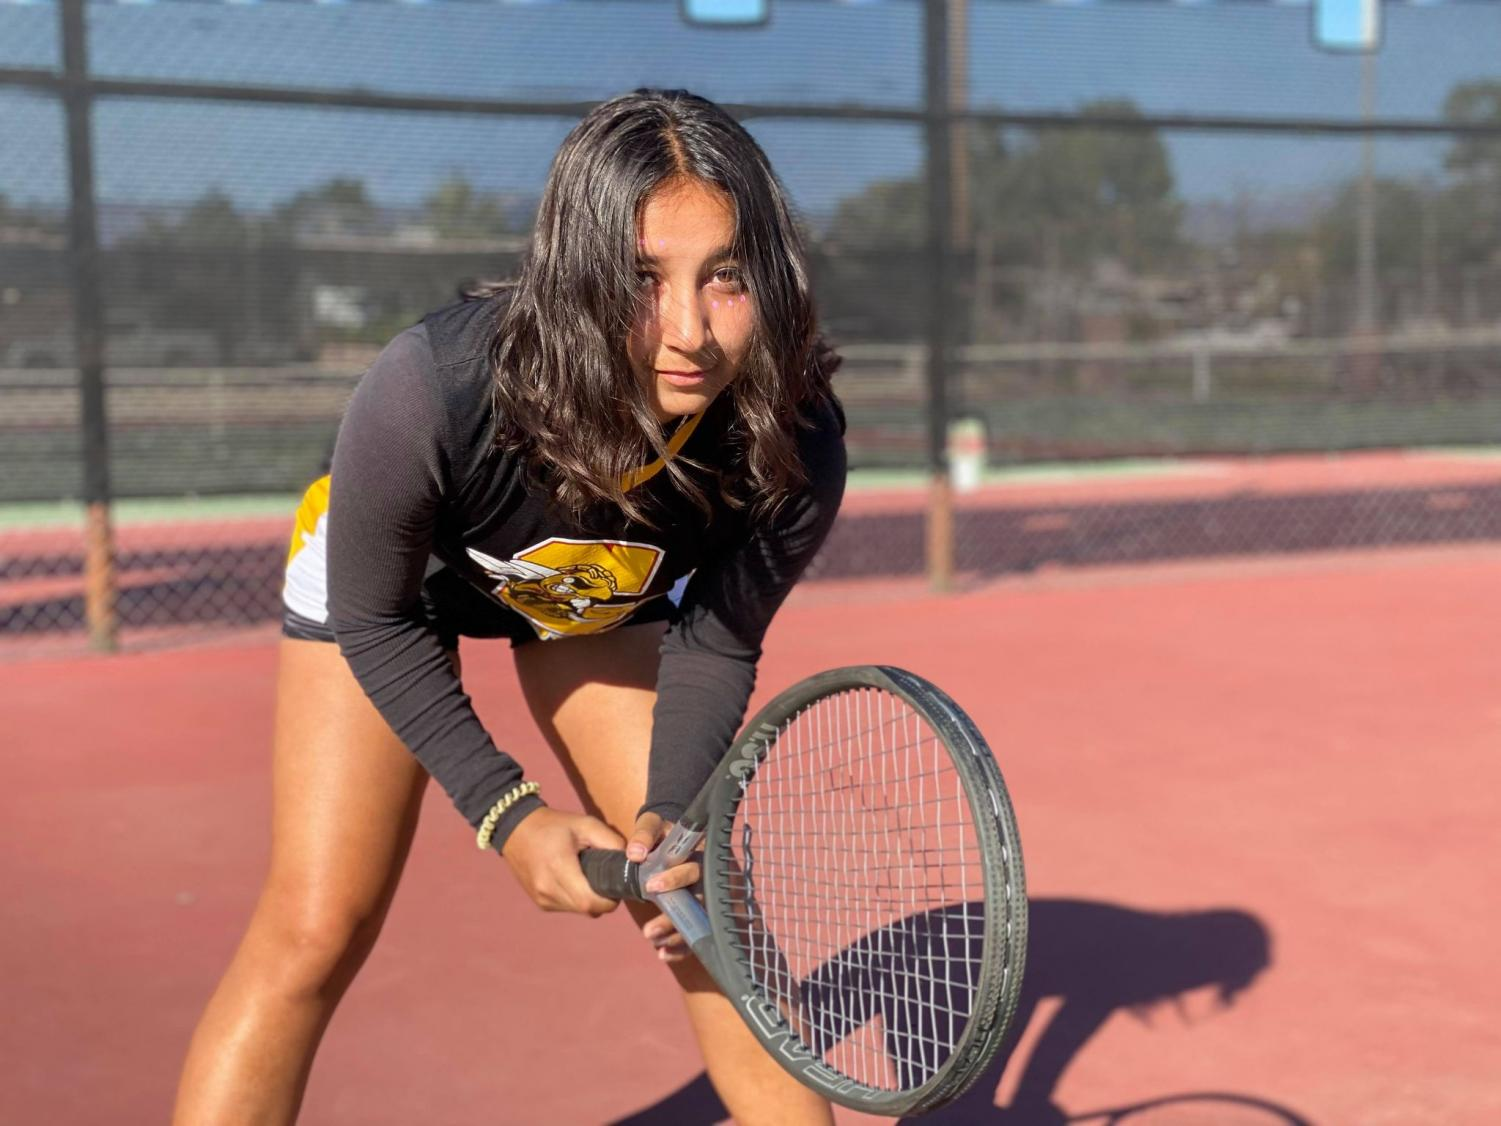 Shantel Marentes, grade 10, has found her place on the tennis court.